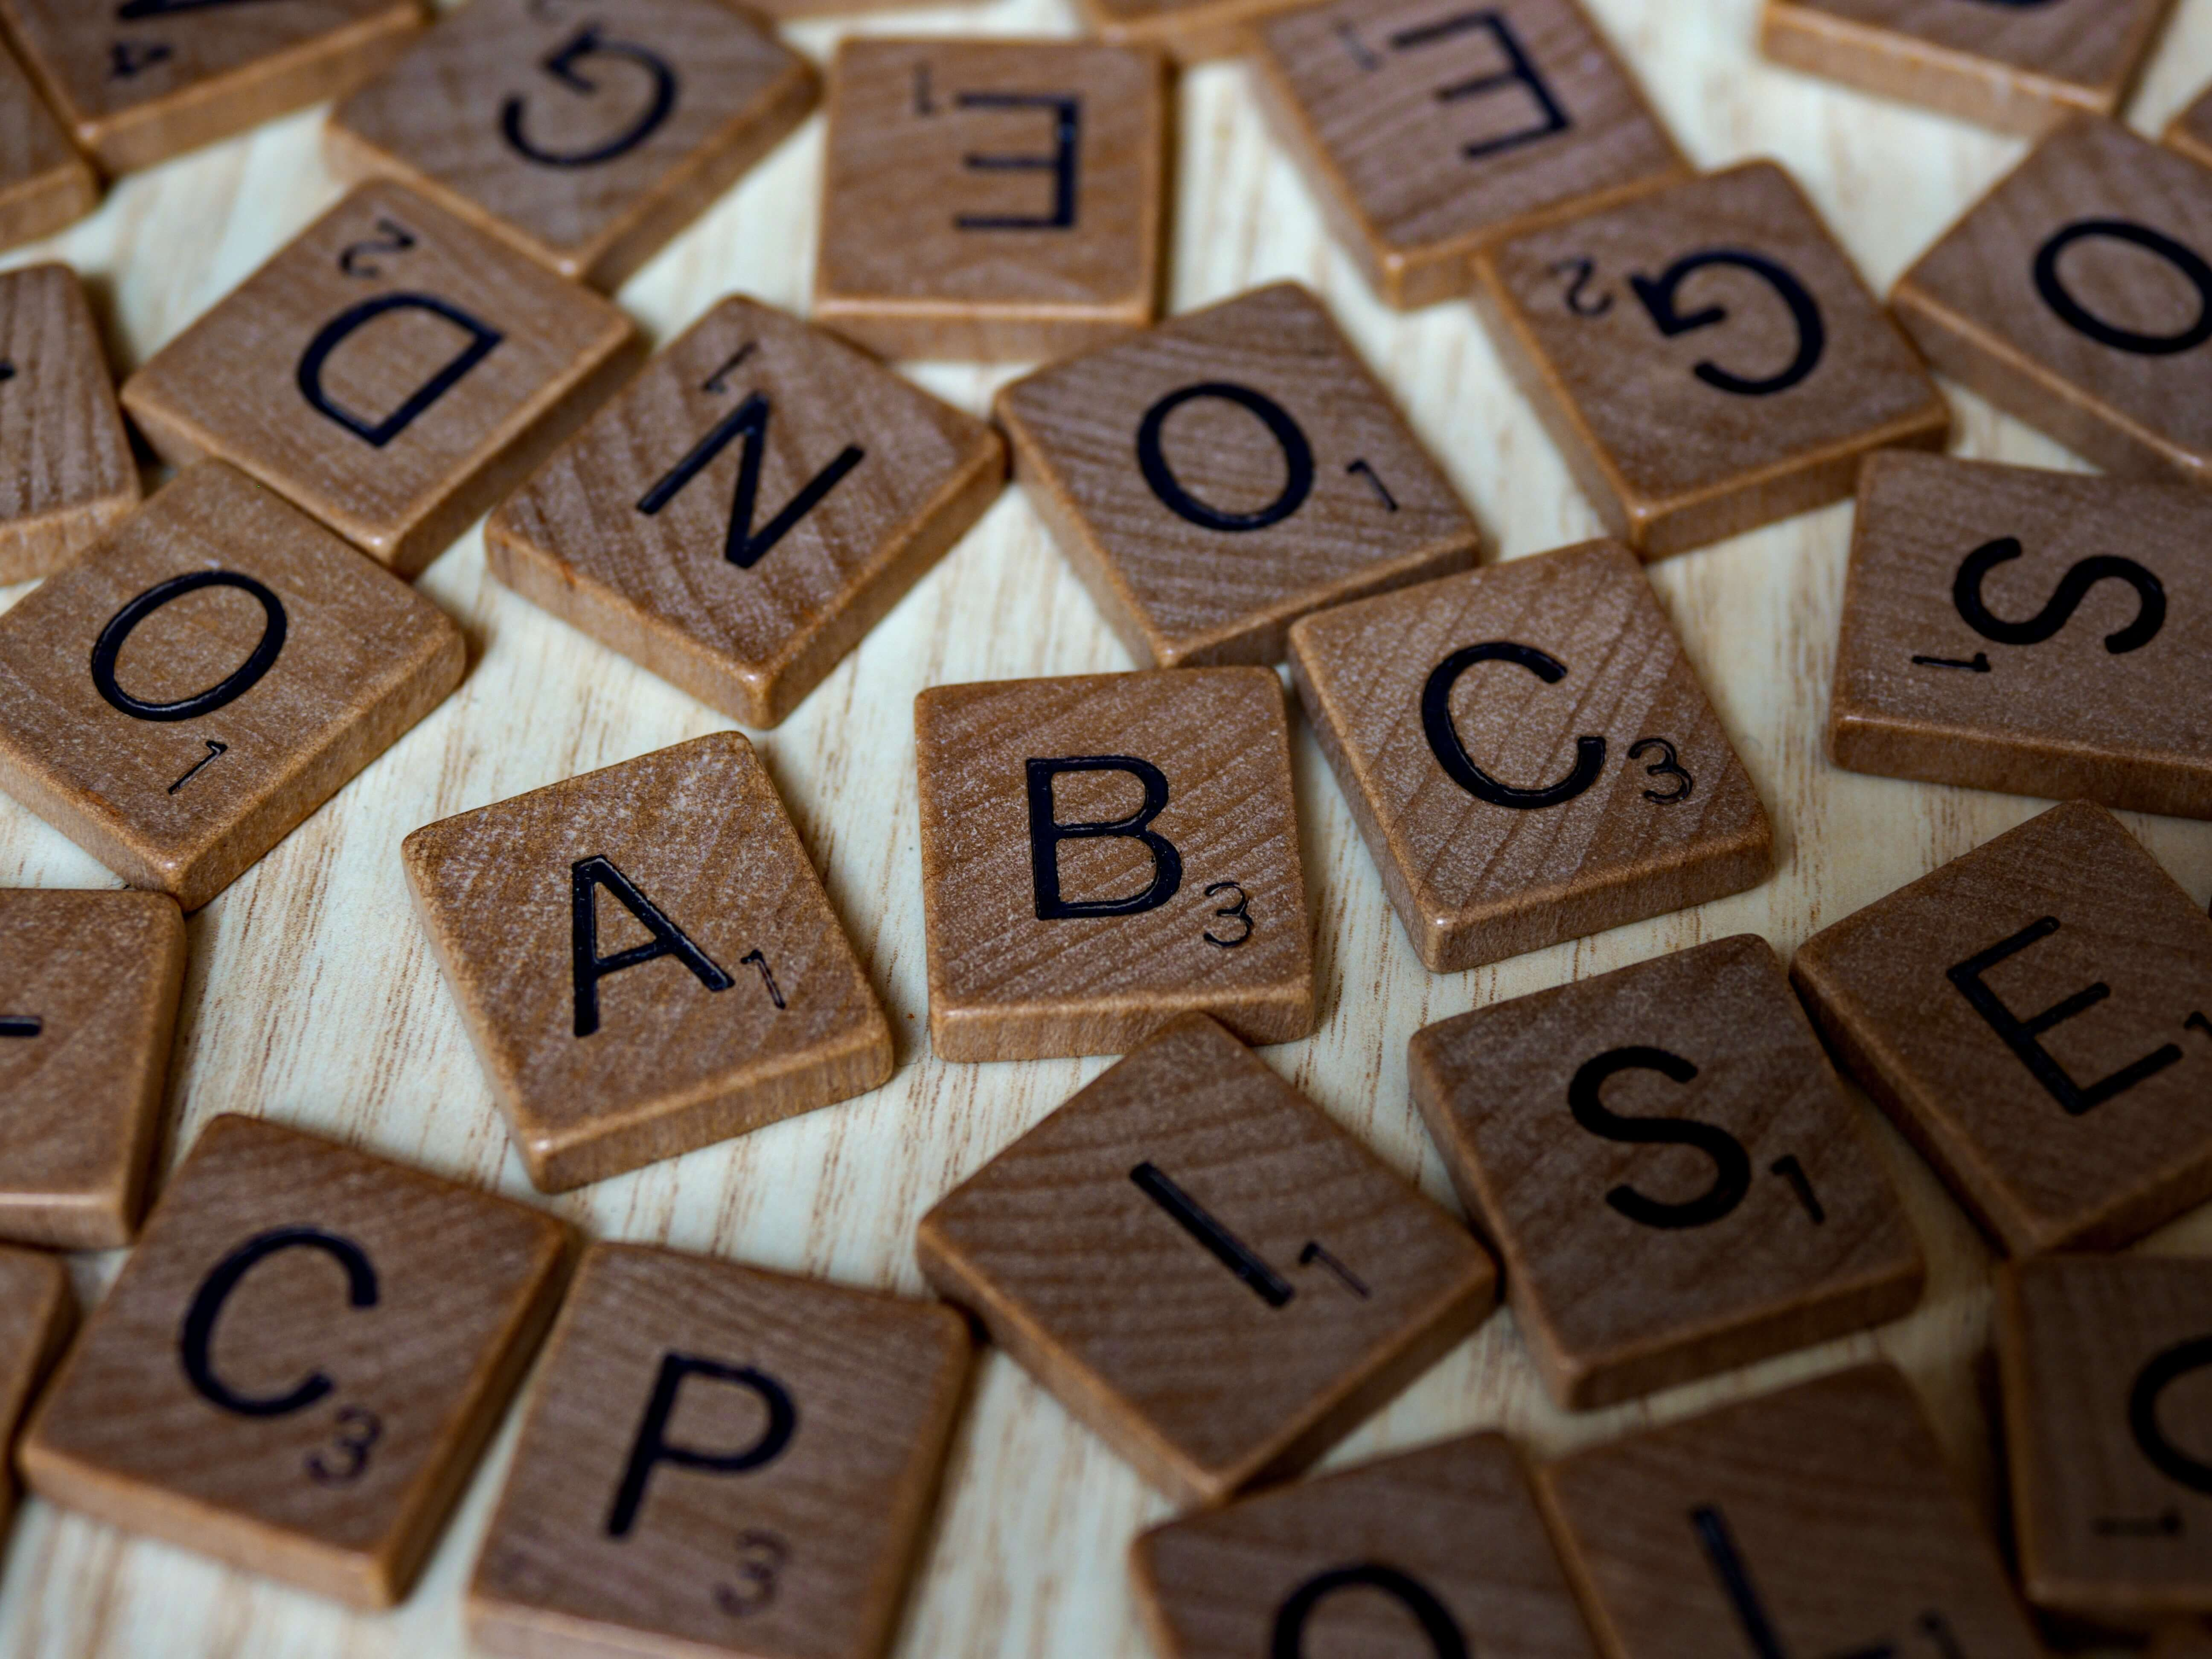 Word games - like Scrabble - can help you pass the time